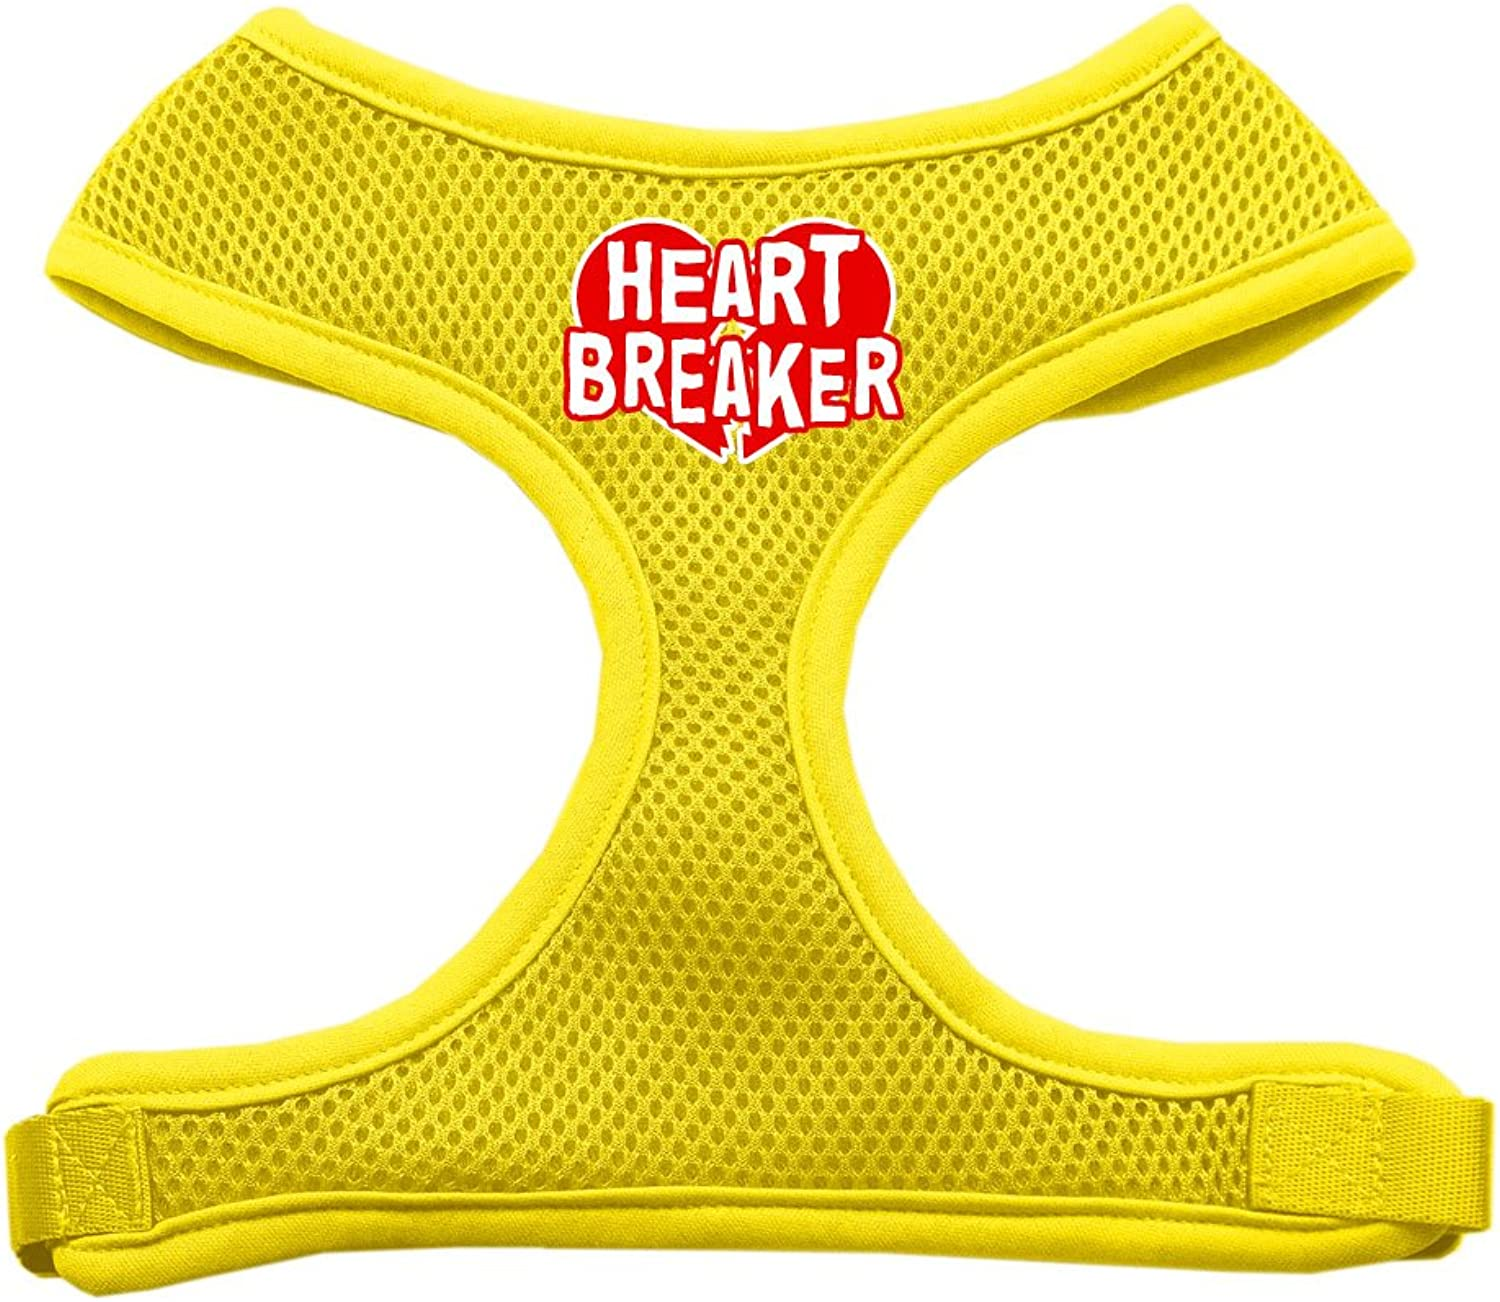 Mirage Pet Products Heart Breaker Soft Mesh Dog Harnesses, XLarge, Yellow